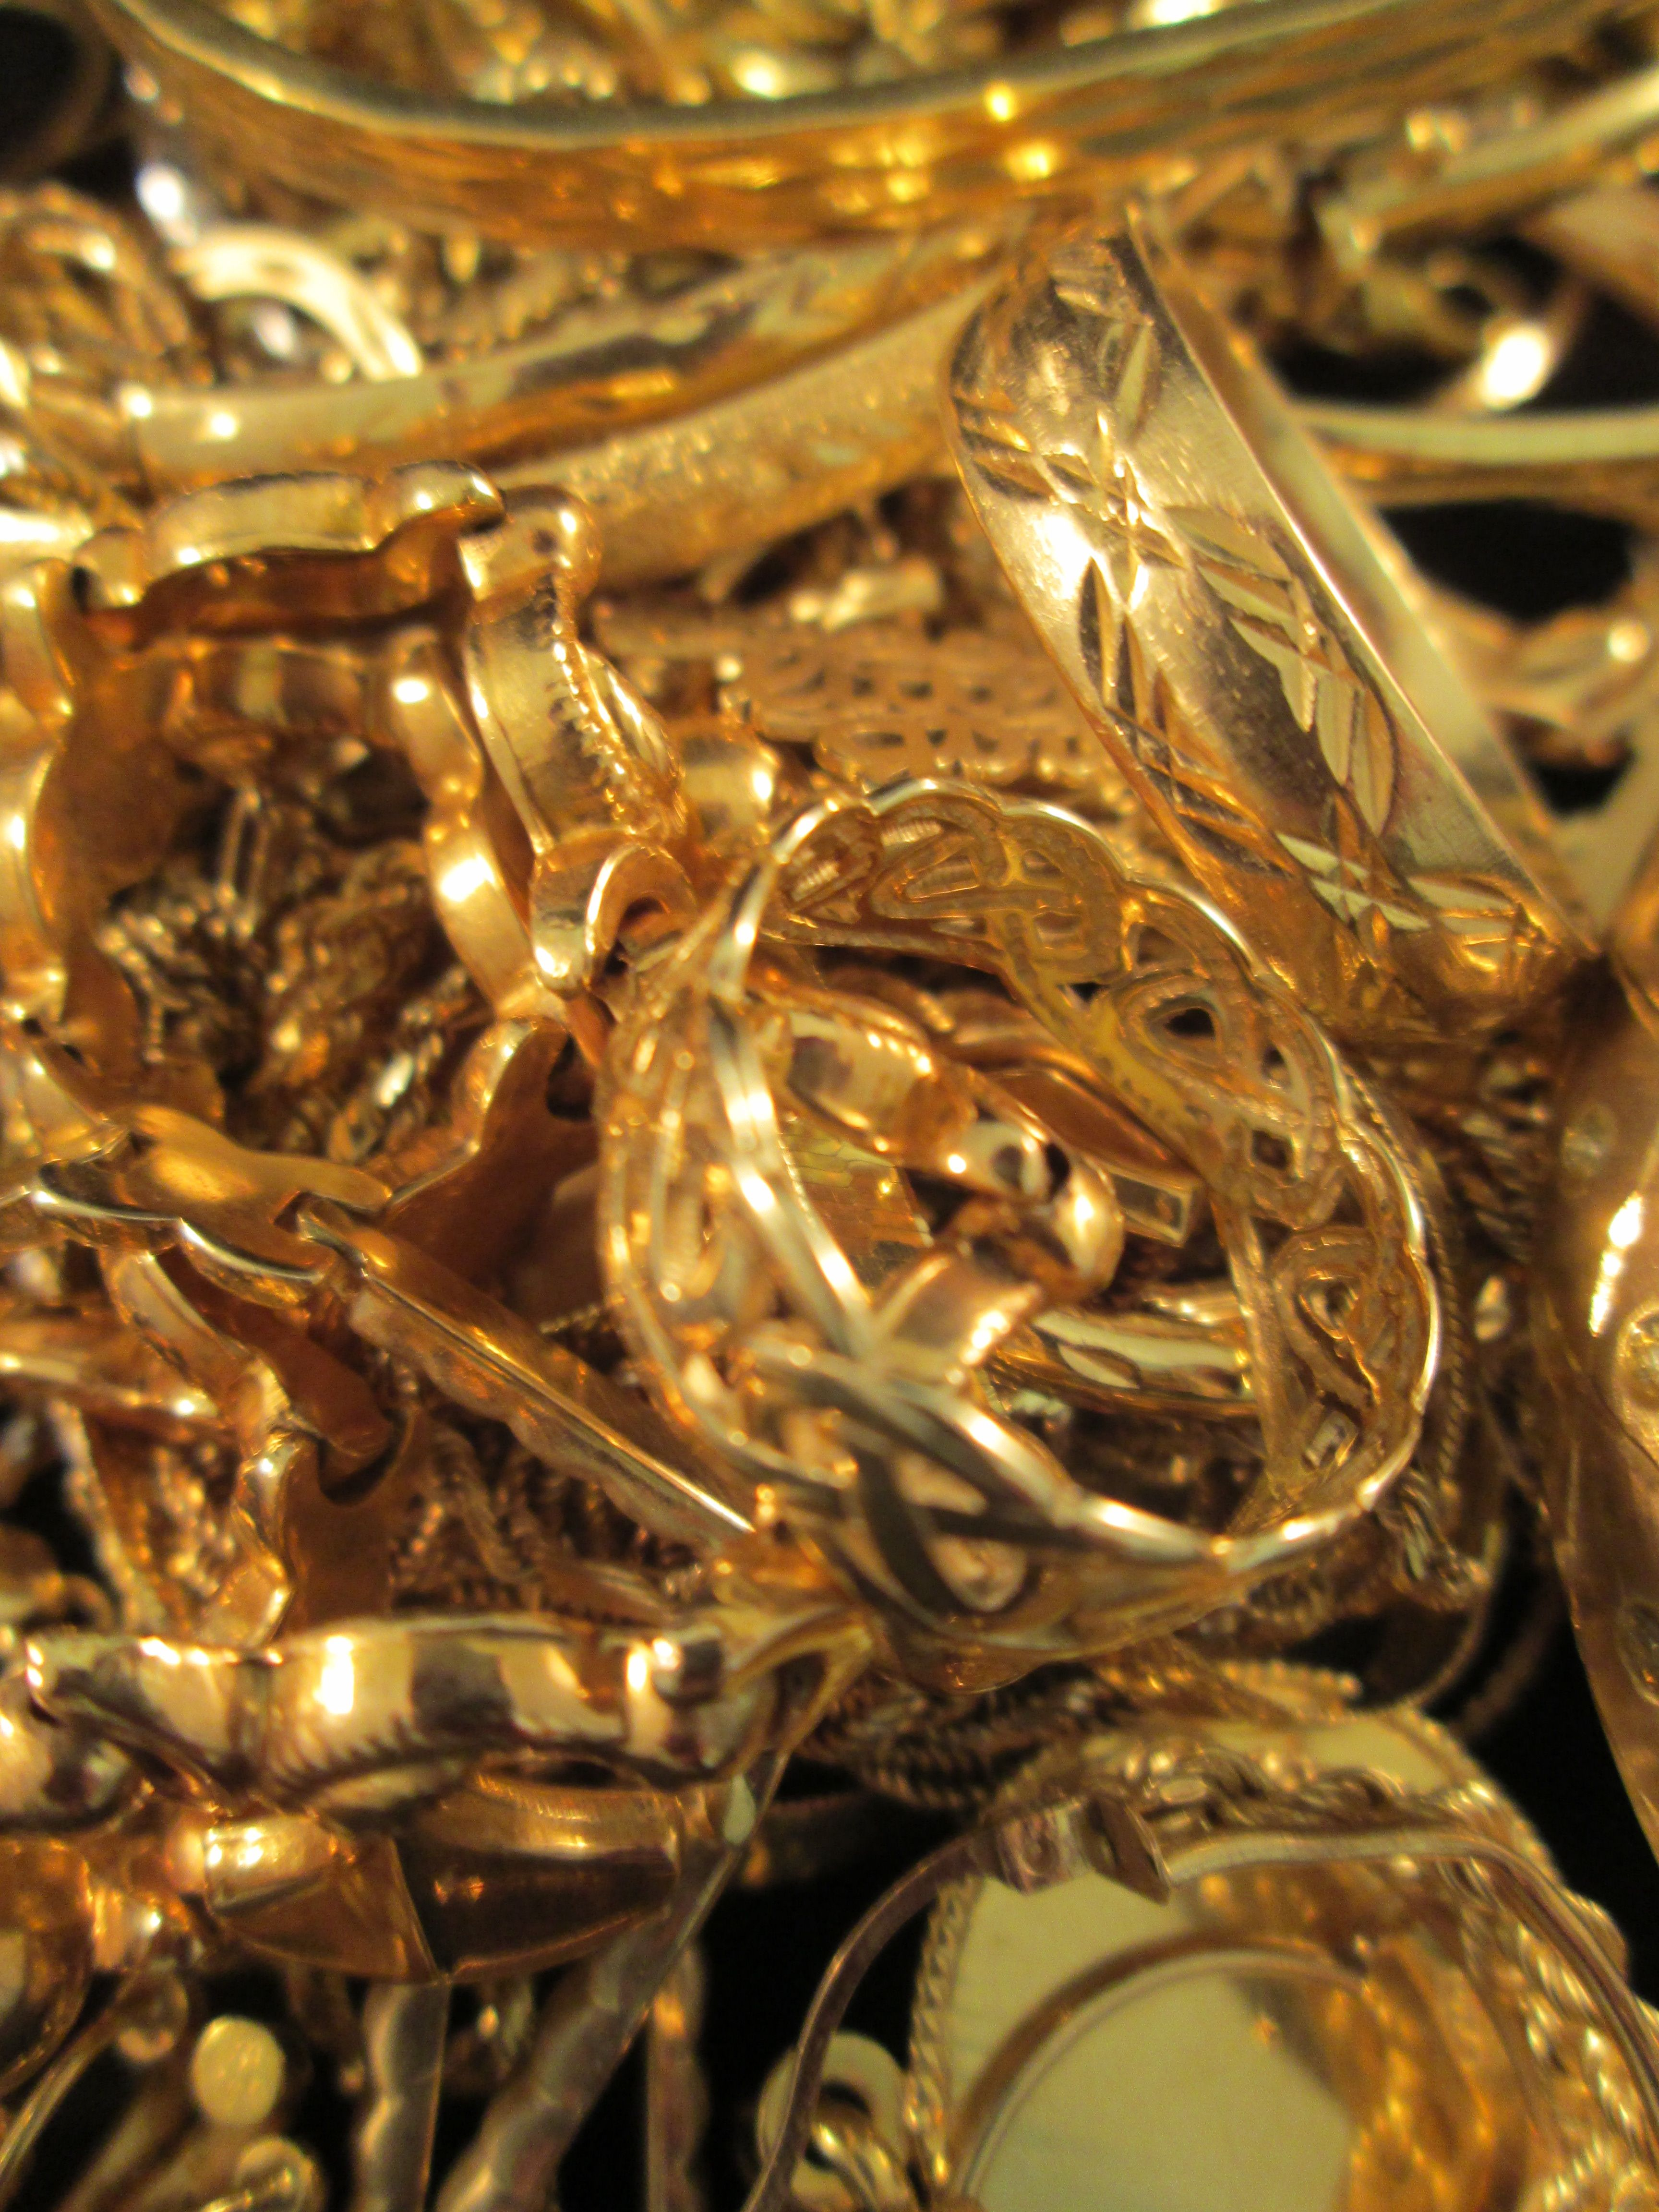 16+ Jewelry insurance that pays cash ideas in 2021